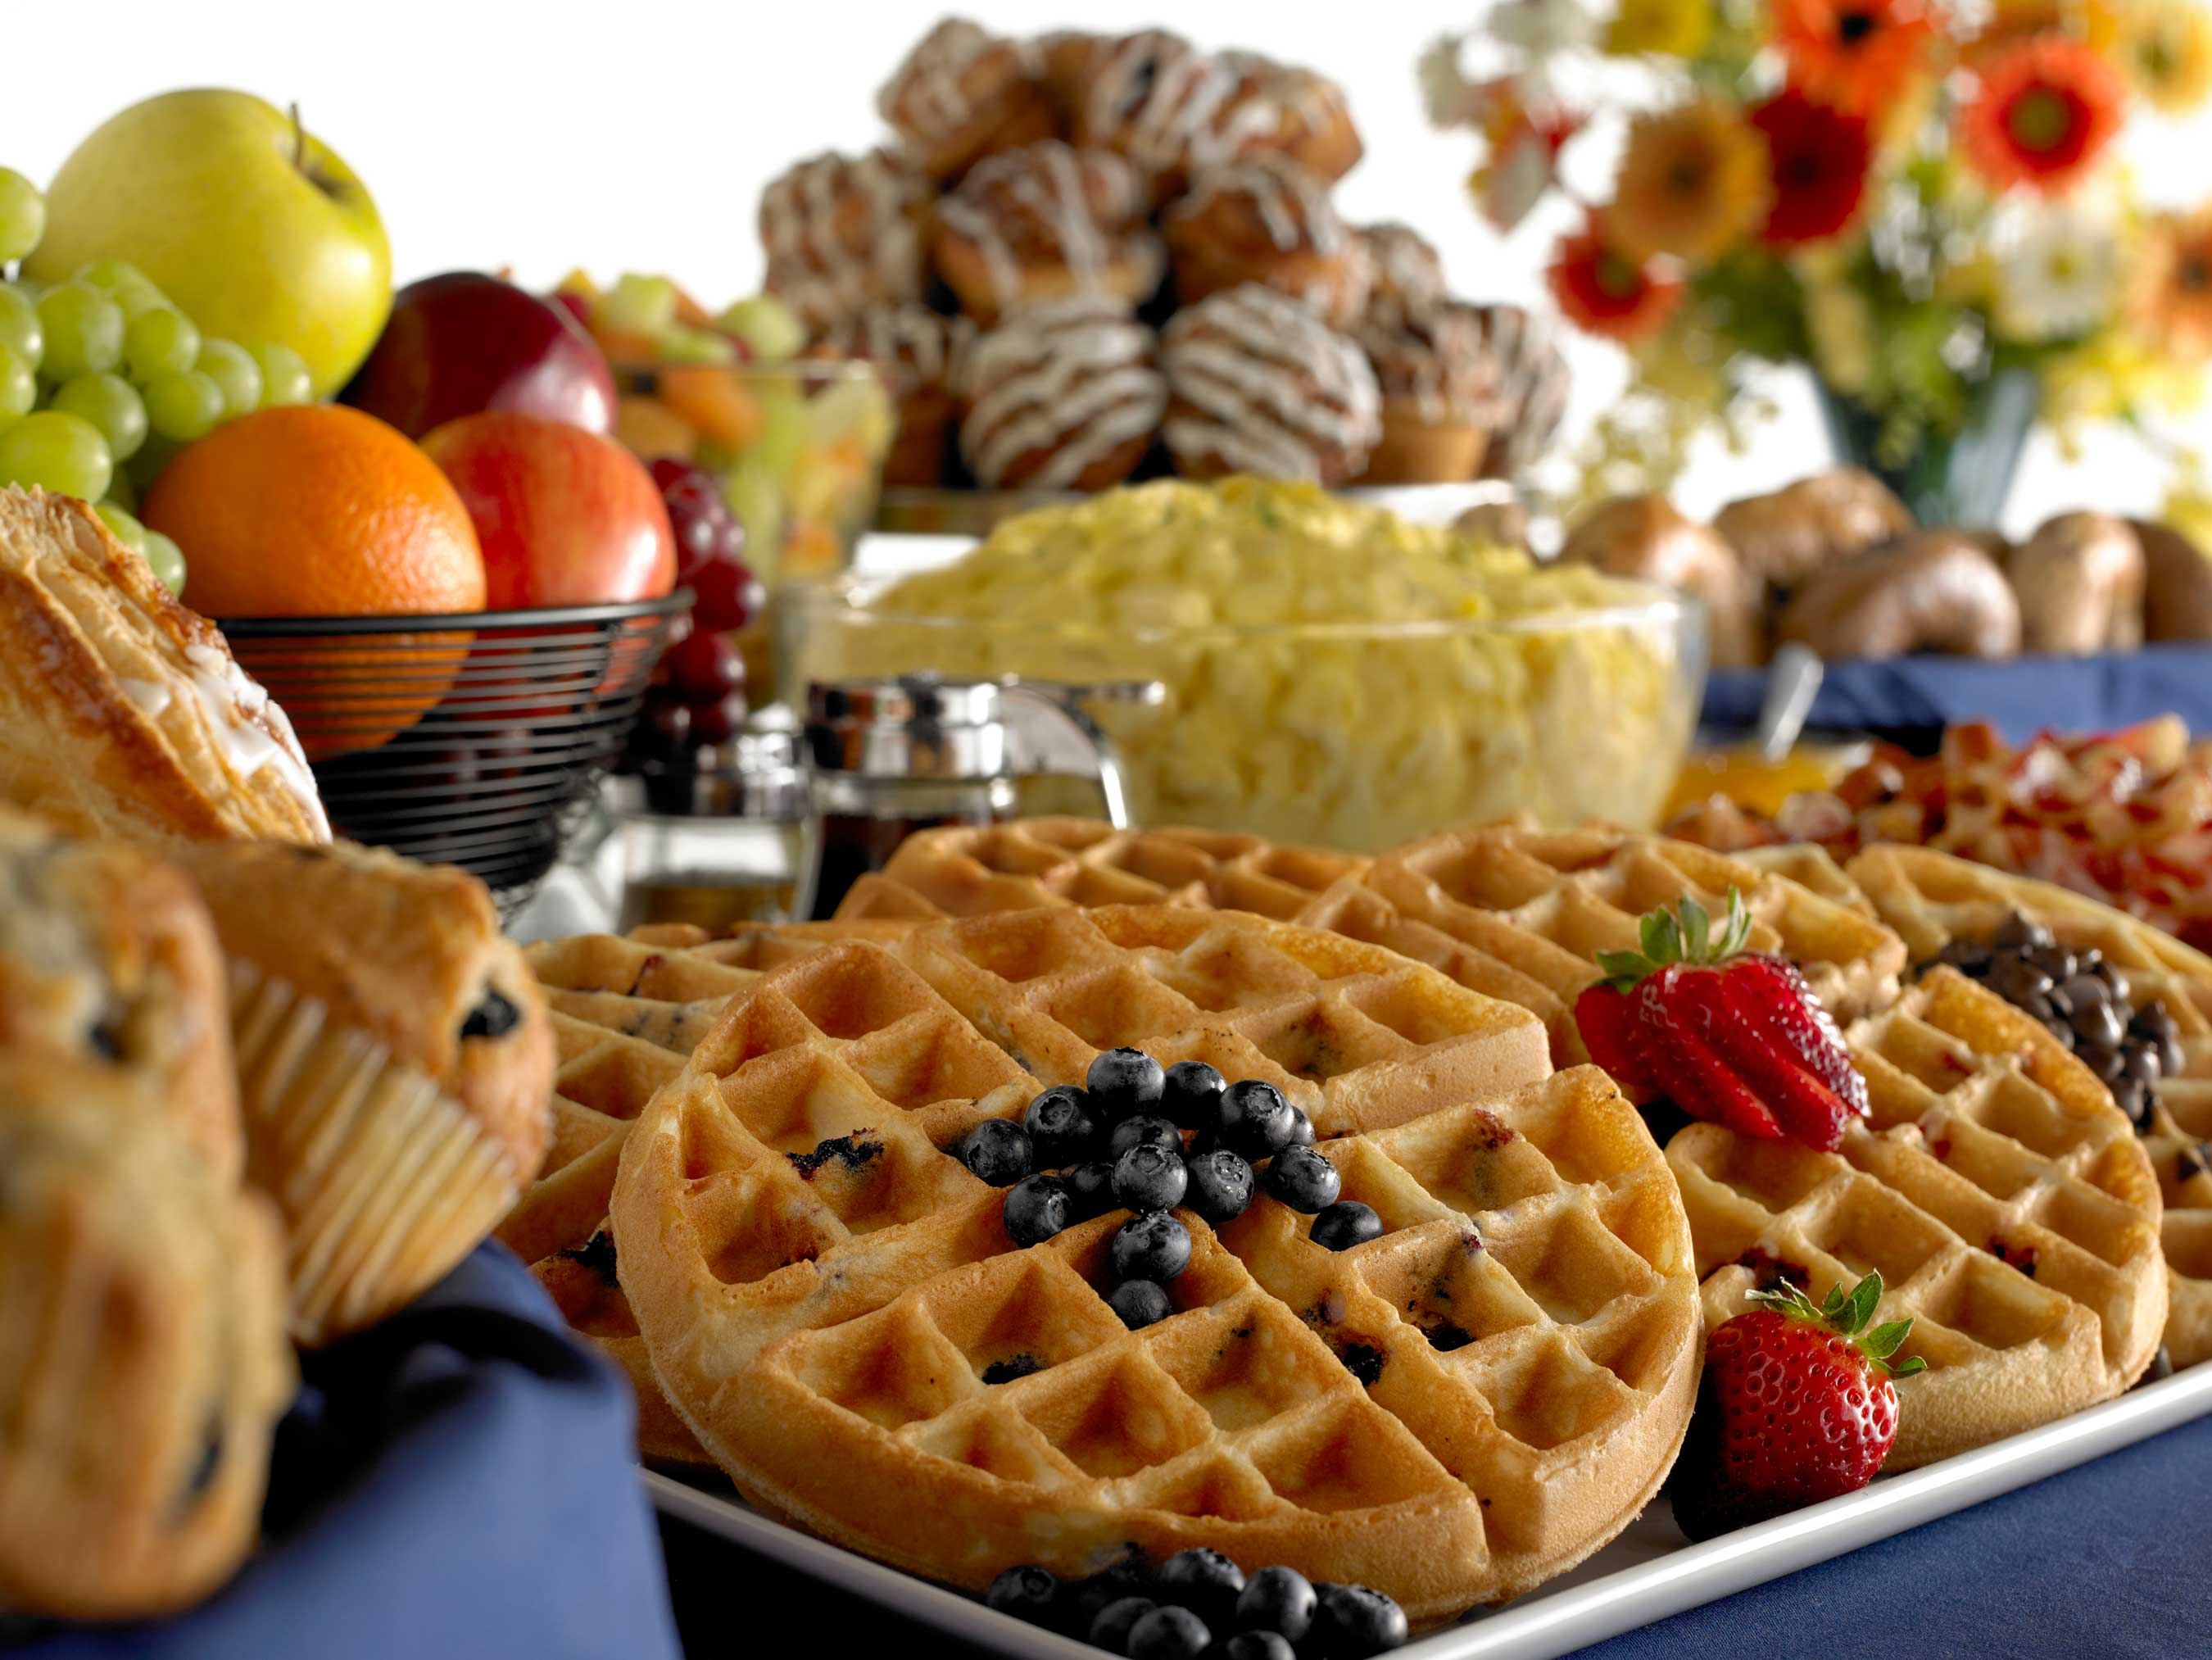 The complimentary hot breakfast offered at every Comfort hotel features hearty and healthy options. Hearty foods include hot eggs, bacon or sausage, and freshly prepared waffles.